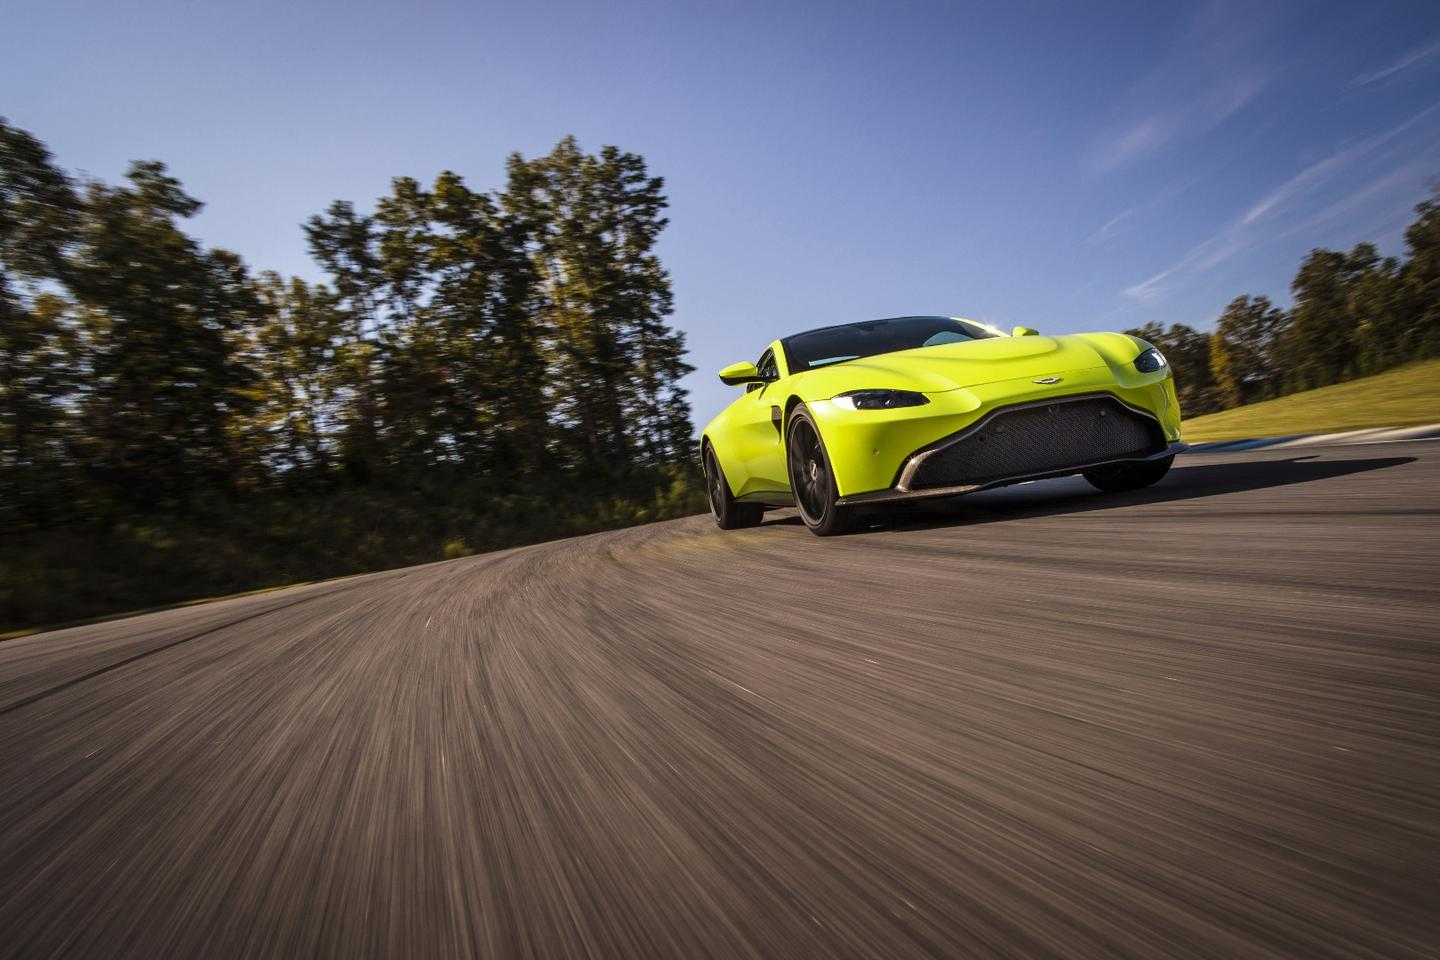 2018 Aston Martin Vantage:electronic differential can lock and unlock in milliseconds, adding to high speed confidence and agility